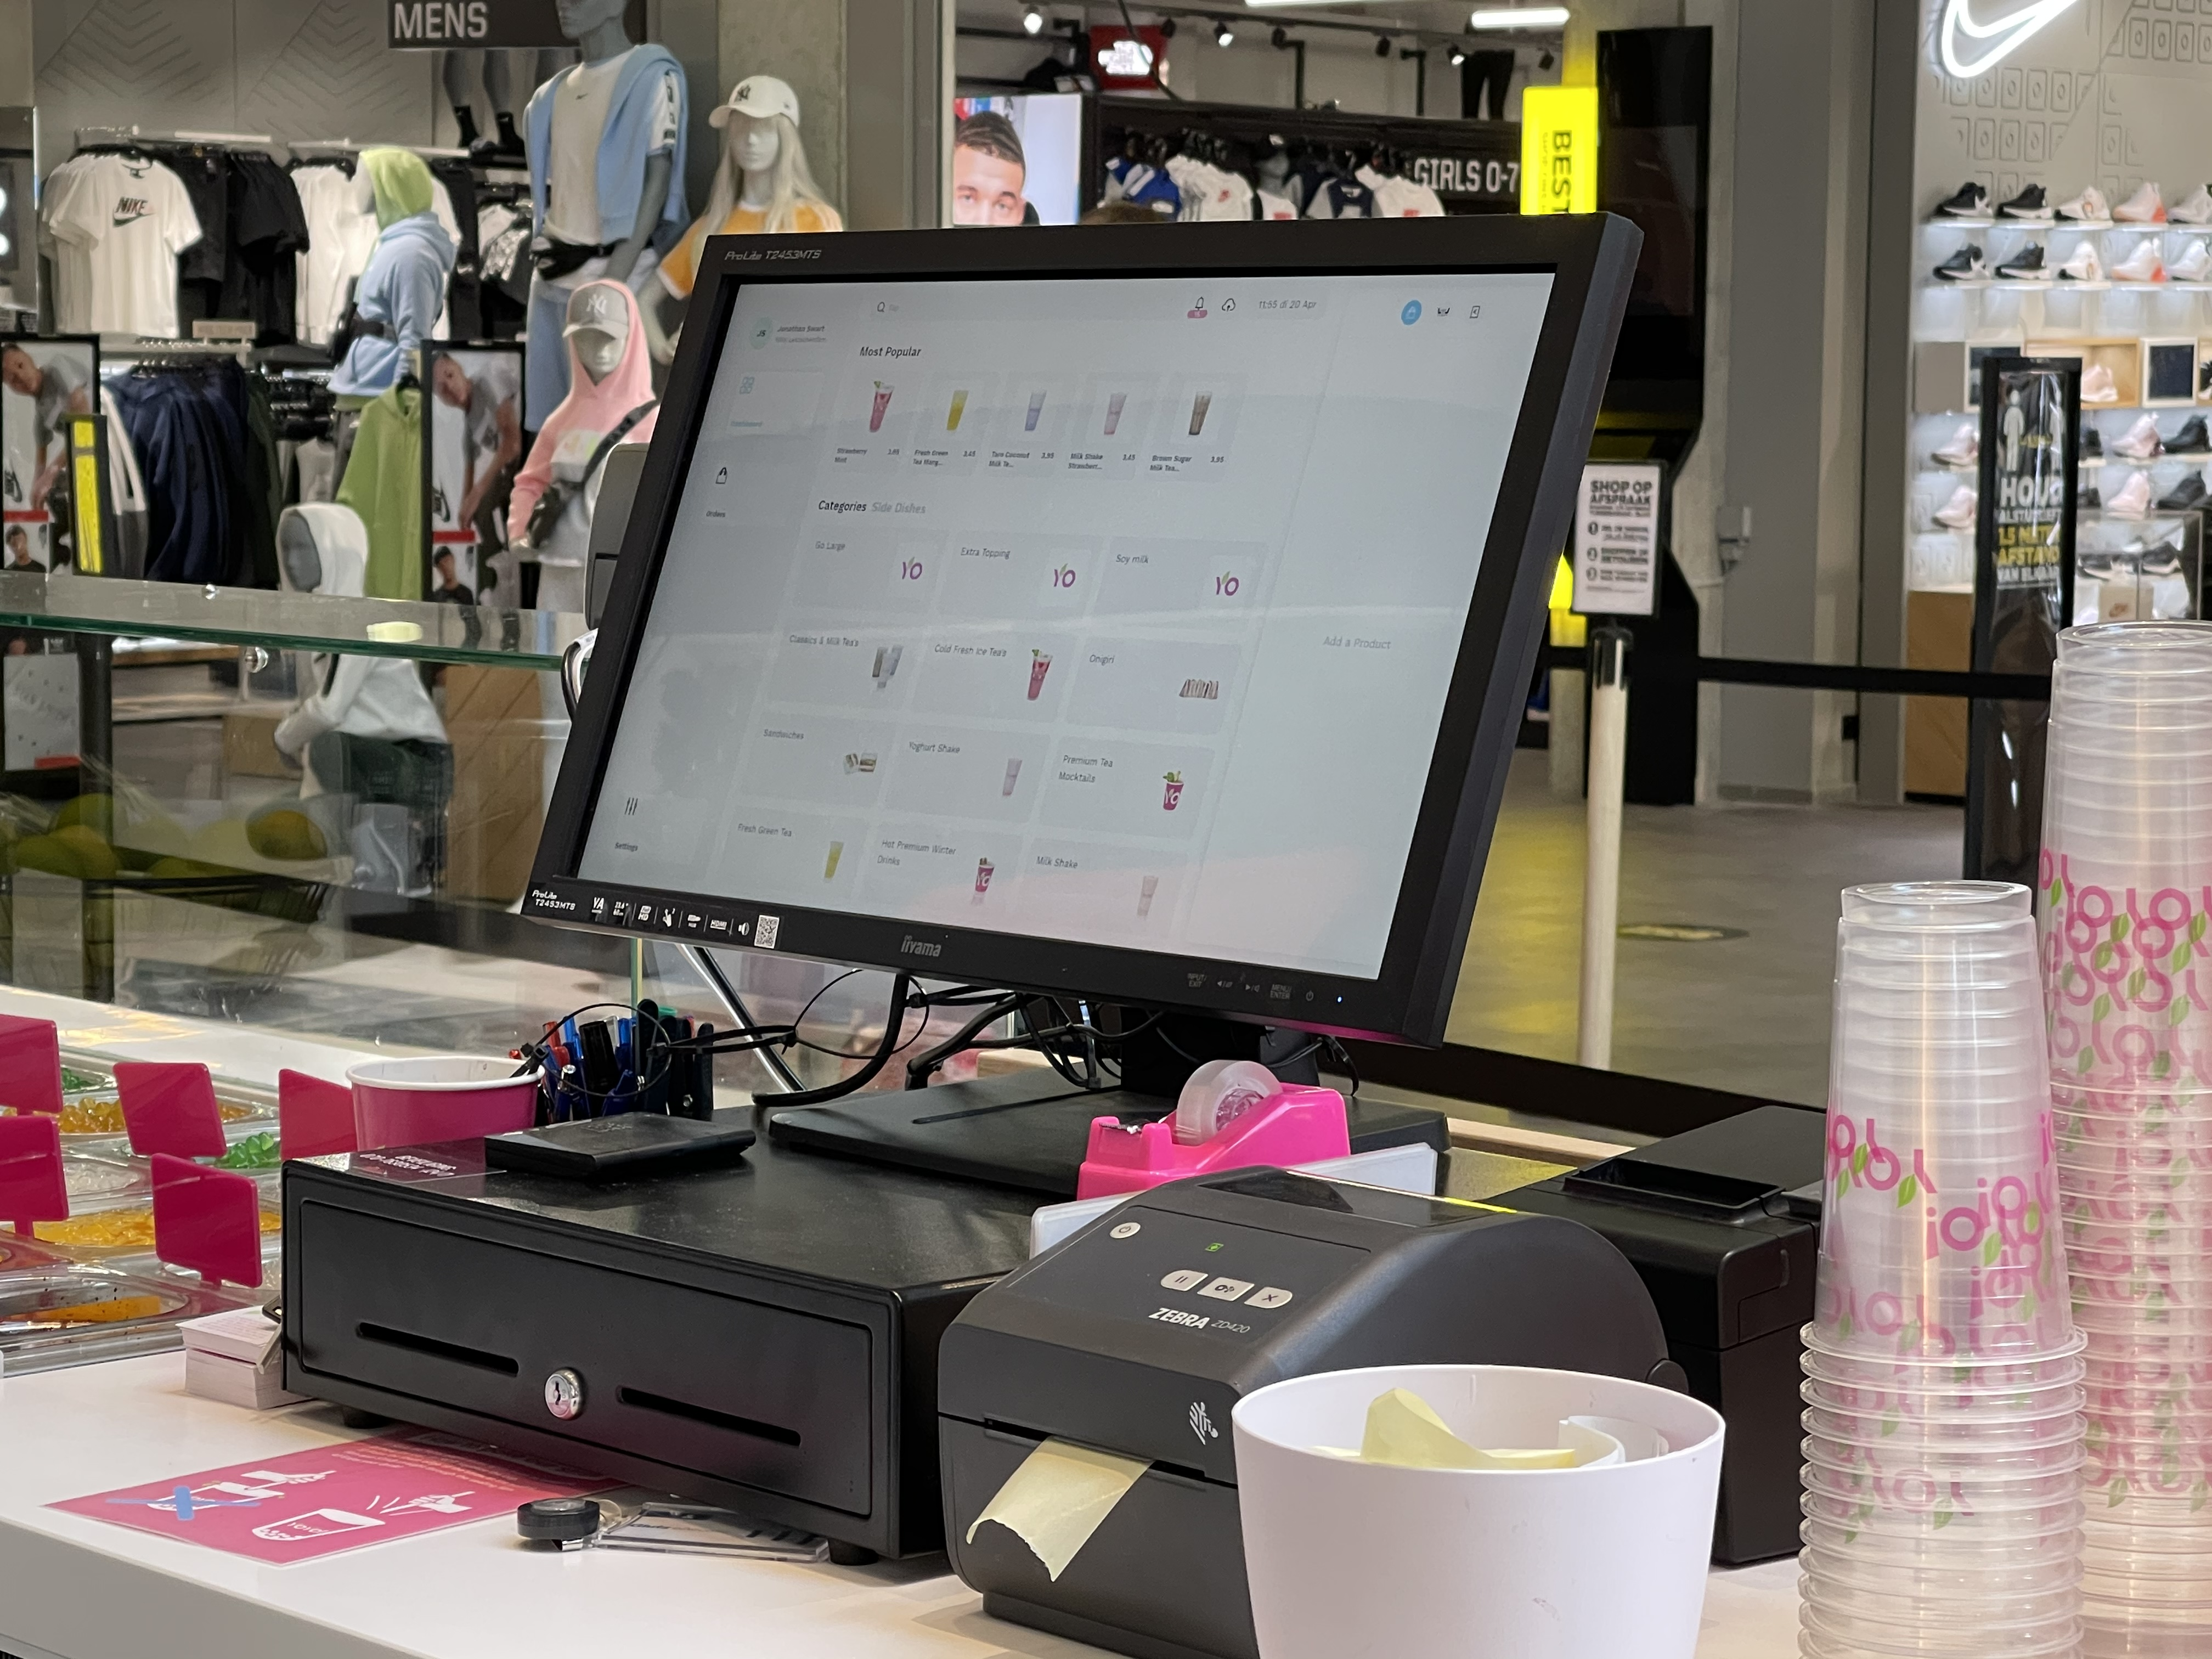 All the hardware & software you need to run your restaurant: POS Cash Register, Receipt and Sticker Printers, Order Status Displays, Kitchen Display System, Self-Service Kiosks, PIN terminals, and QR scanners. All connected to Eatcard's intuitive platform